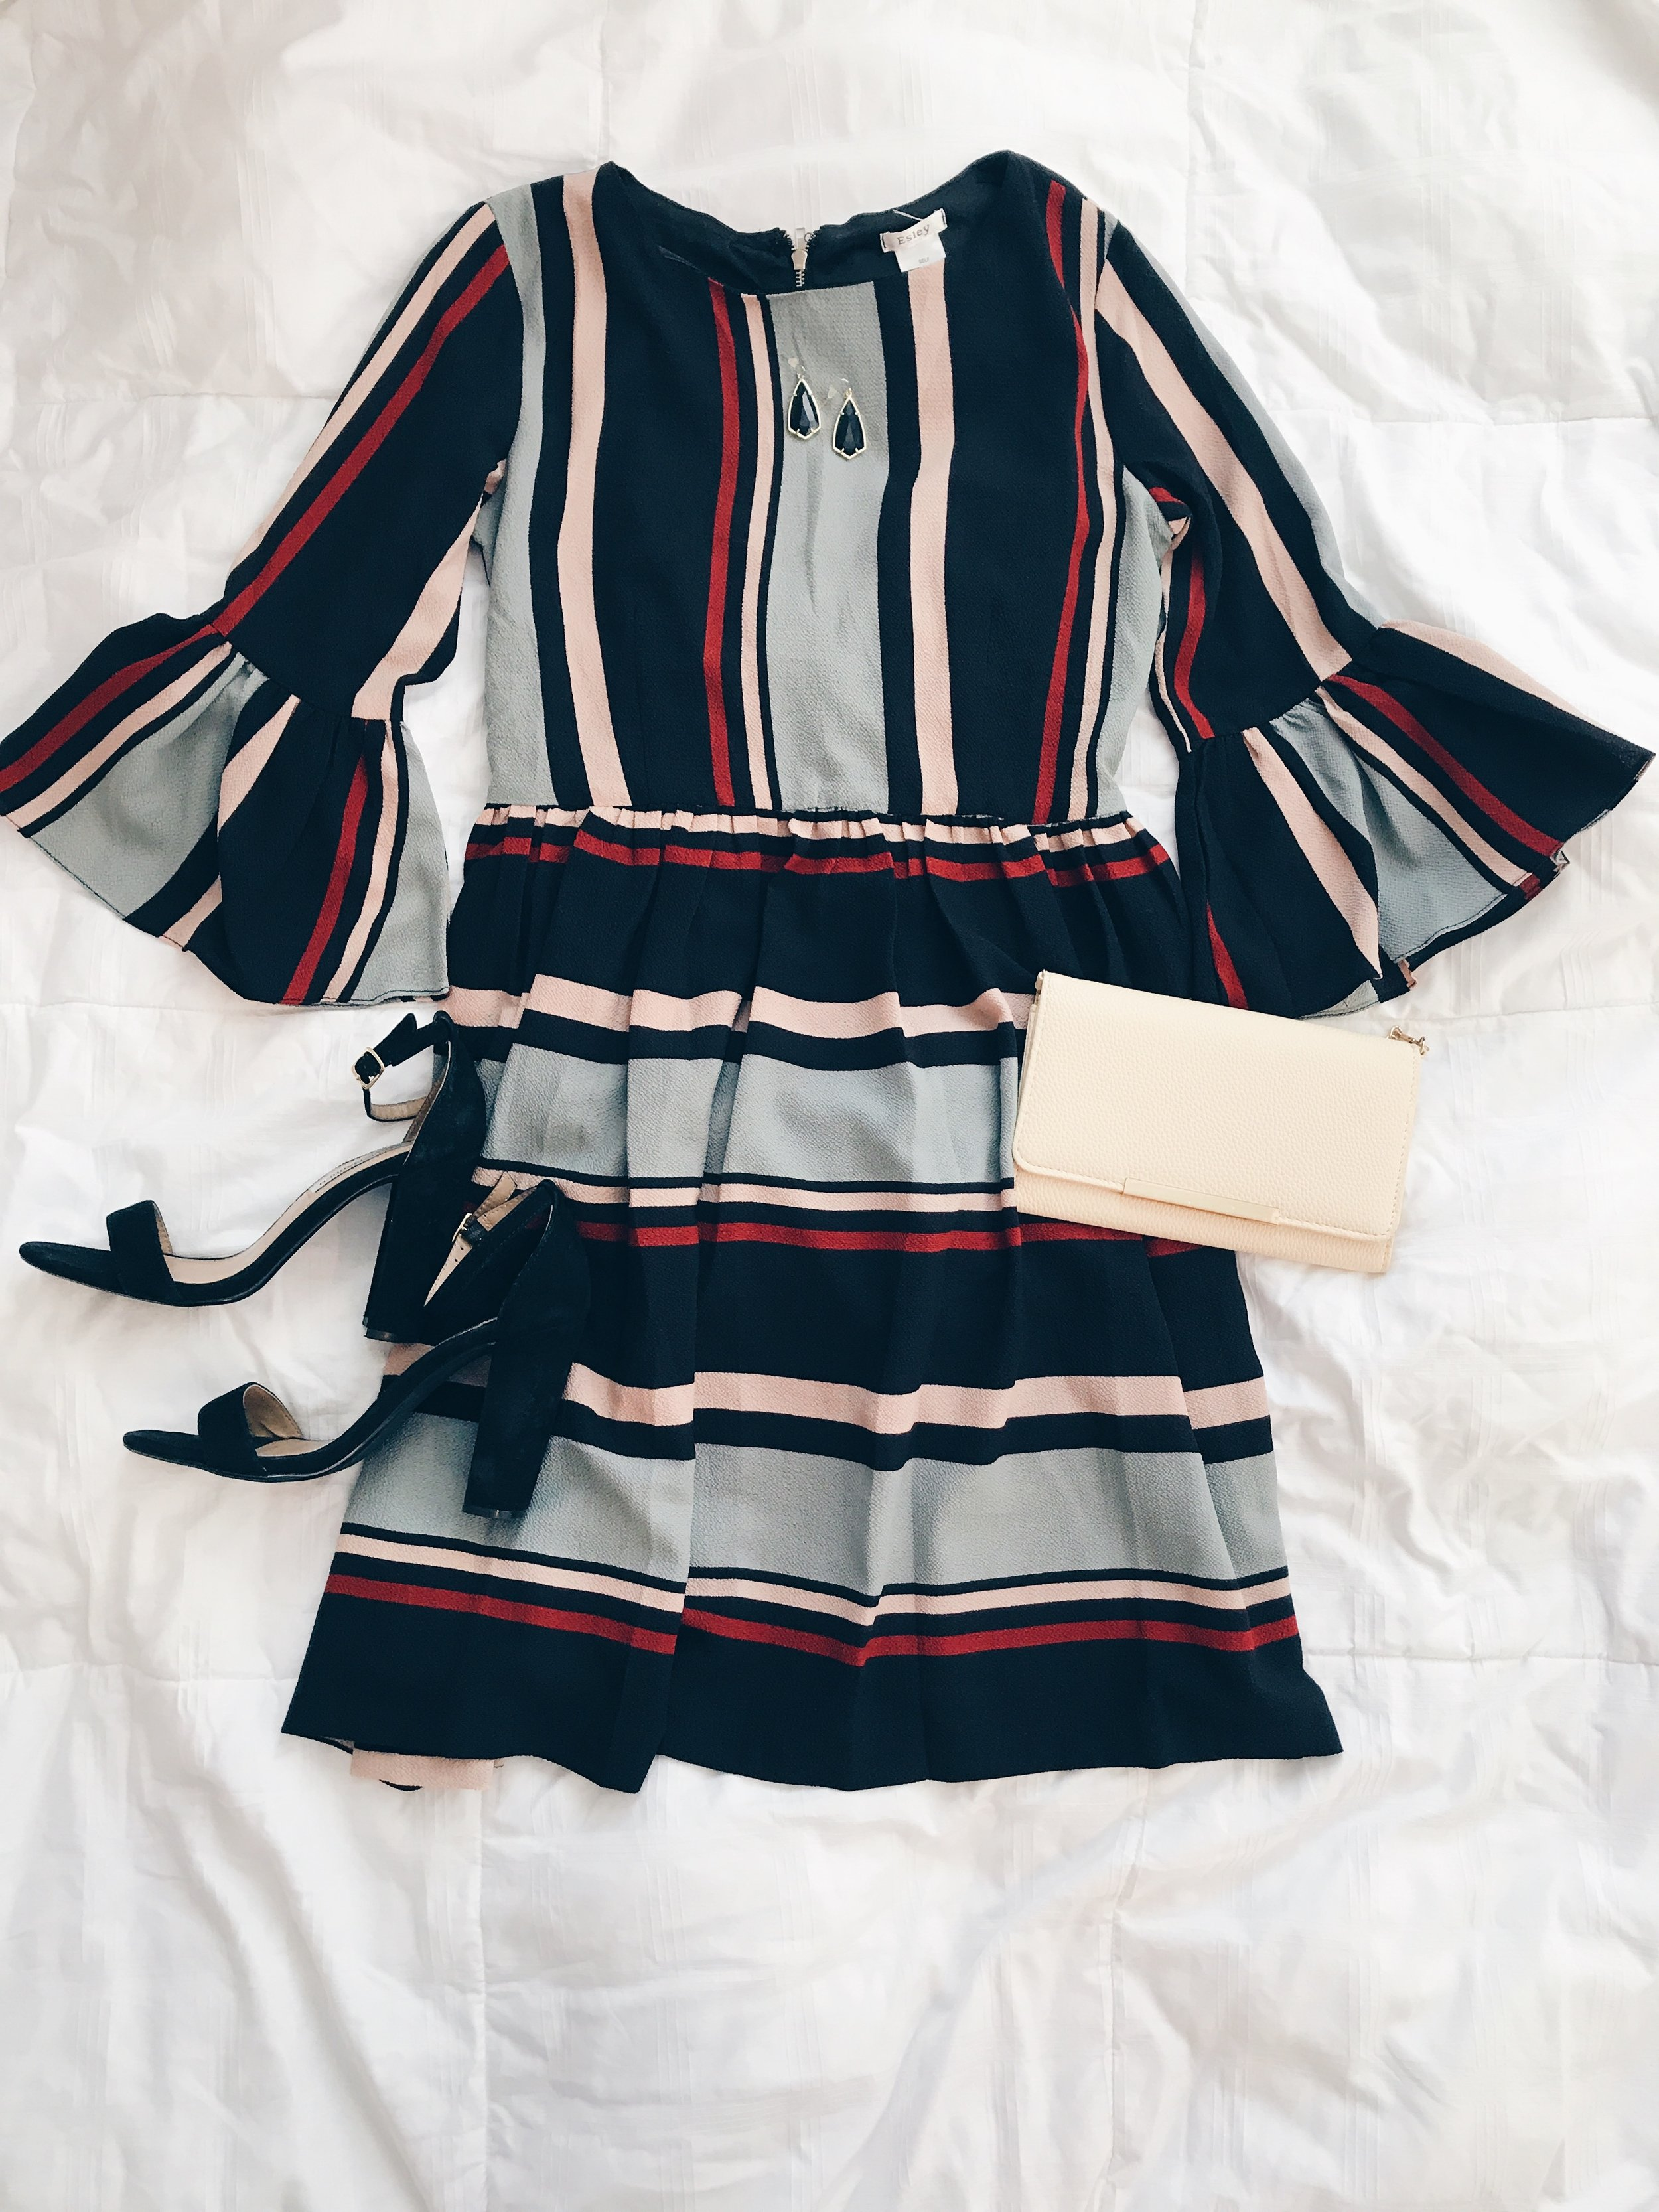 - Dress|| Heels || Earrings || Clutch*Use the code TRENDY10 for 10% off October 2 - October 9 at Magnolia Boutique.